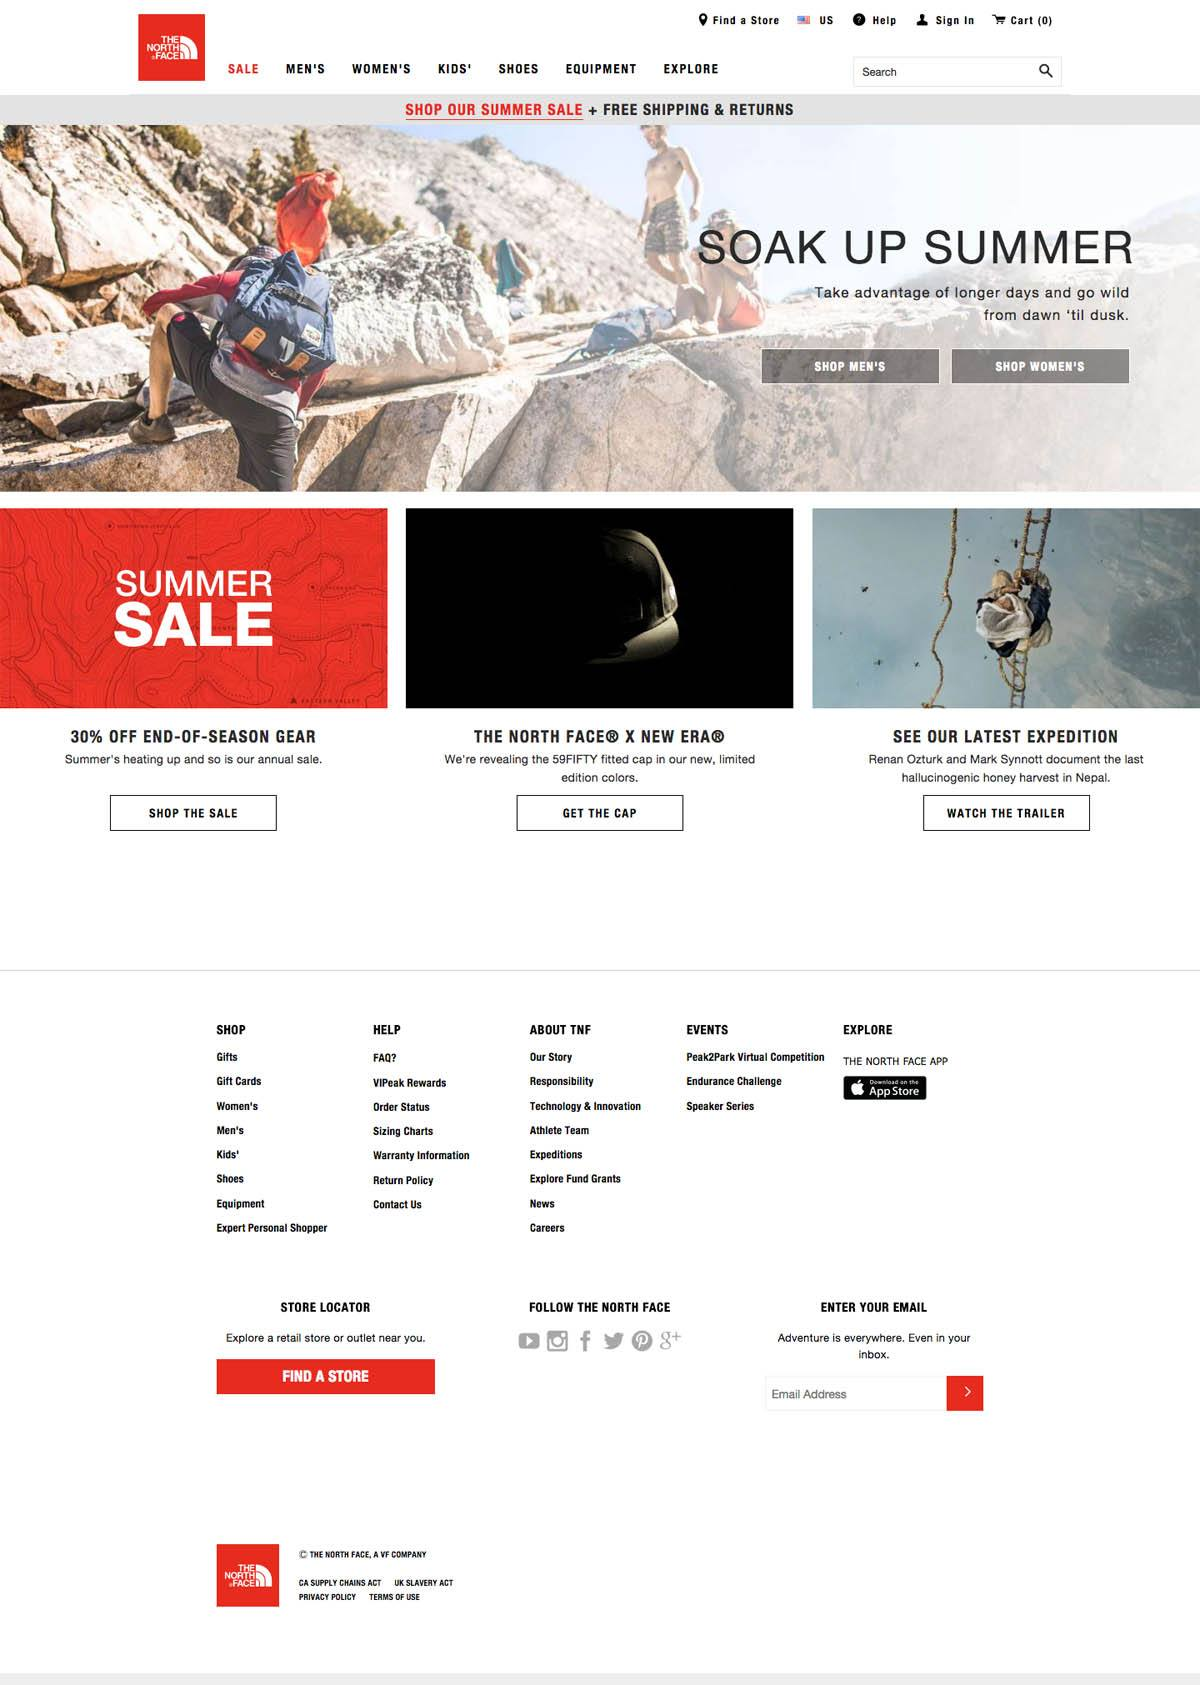 eCommerce website: The North Face